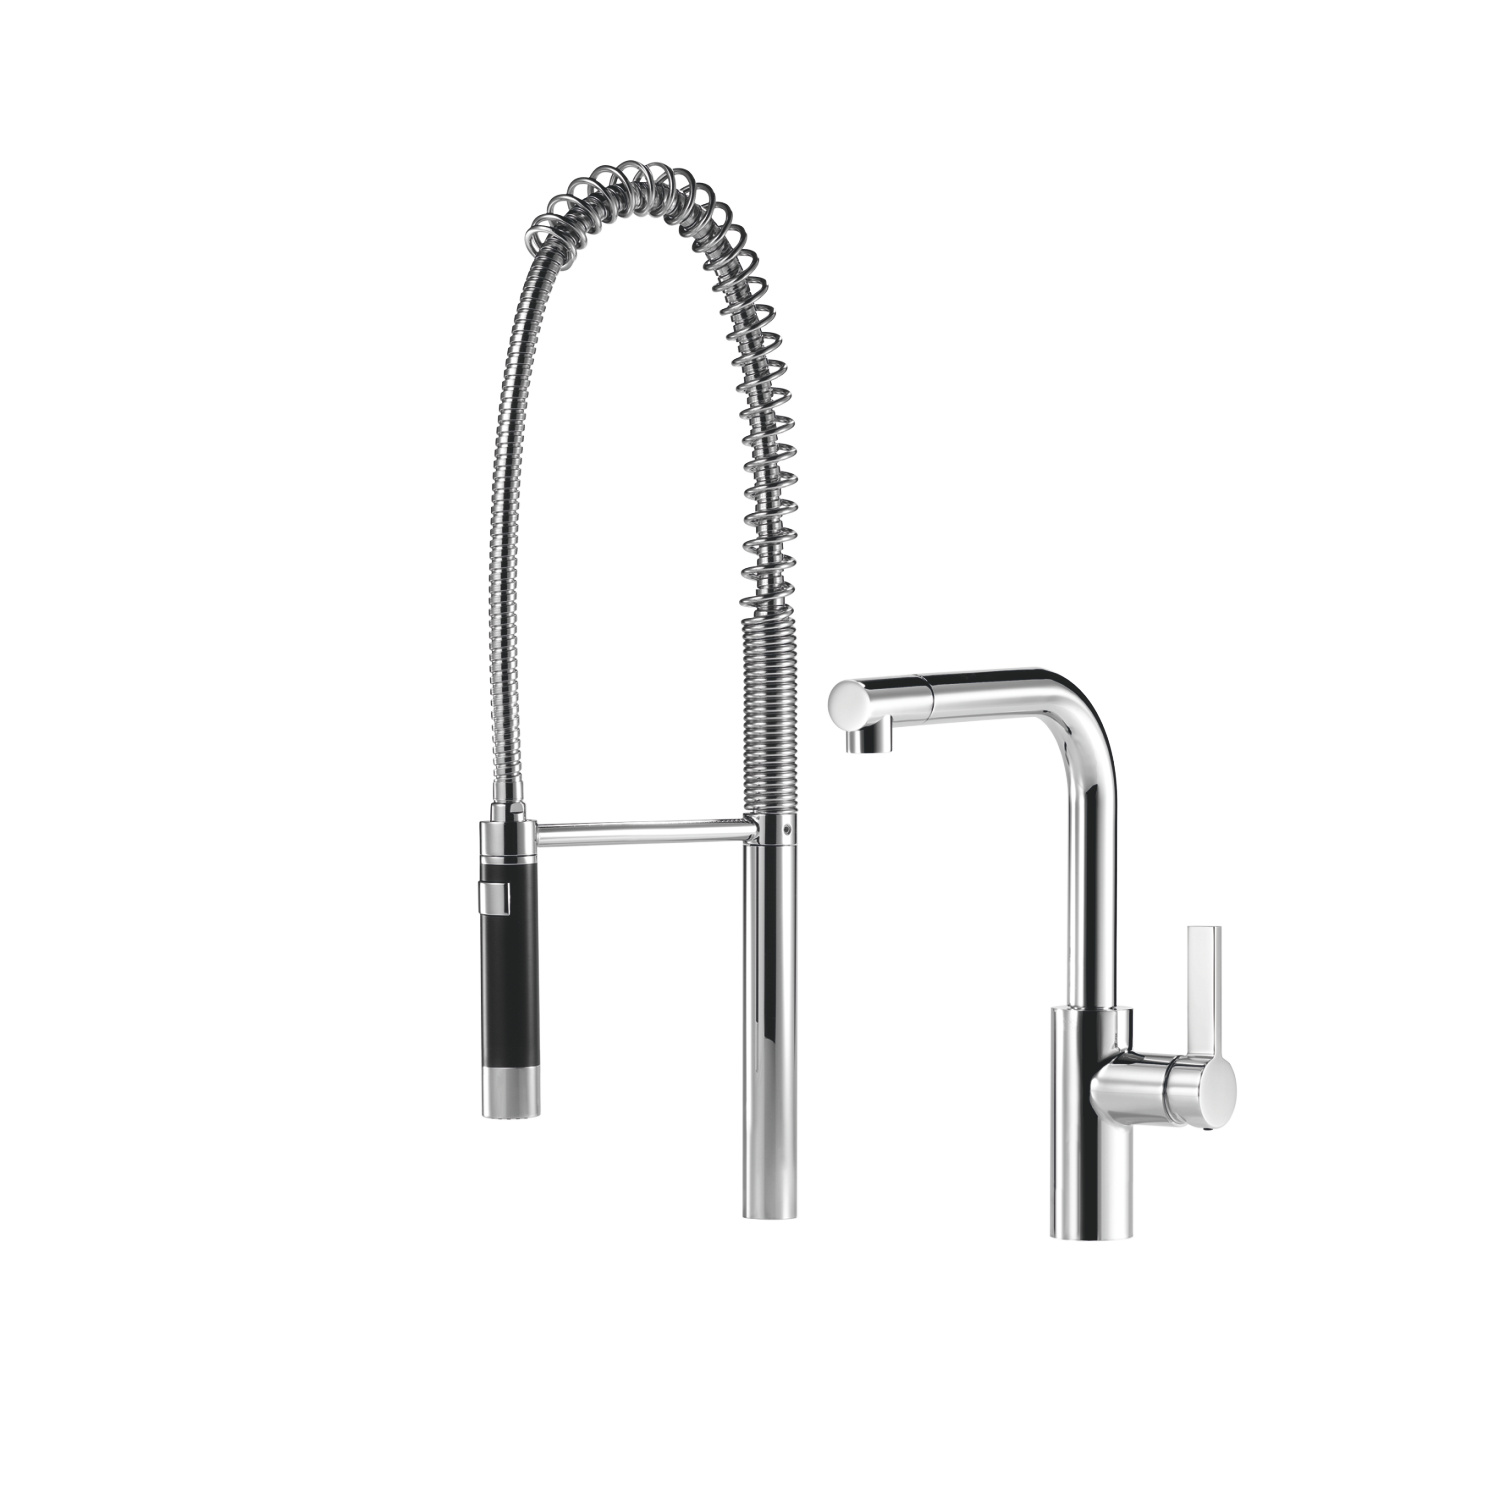 Single-lever mixer with profi spray set - polished chrome - 33 826 790-00 + 27 789 970-00